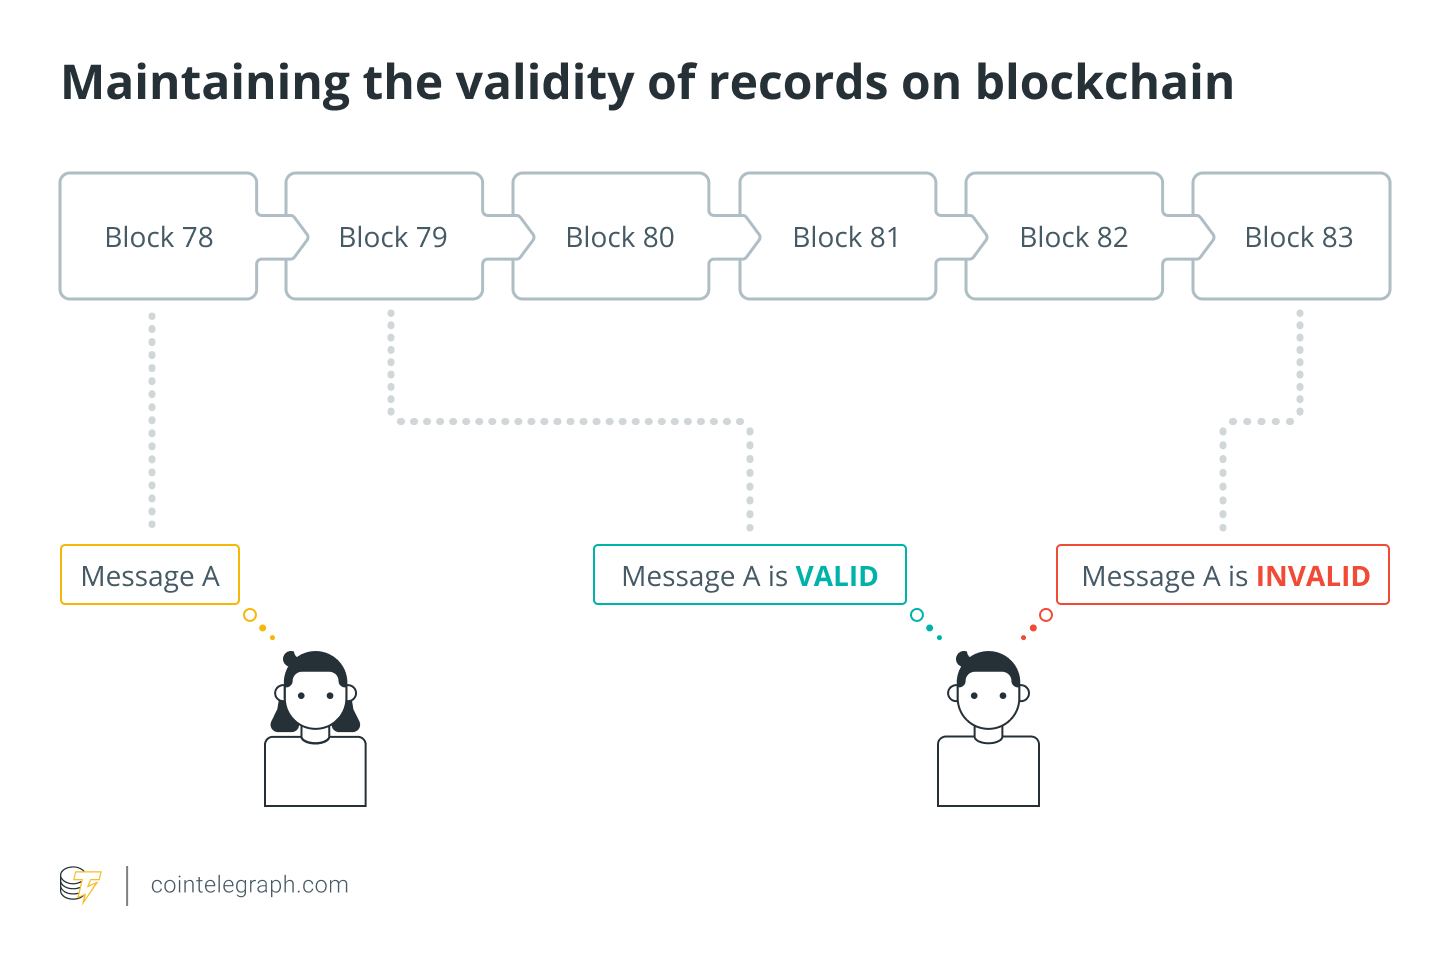 Maintaining the validity of records on blockchain